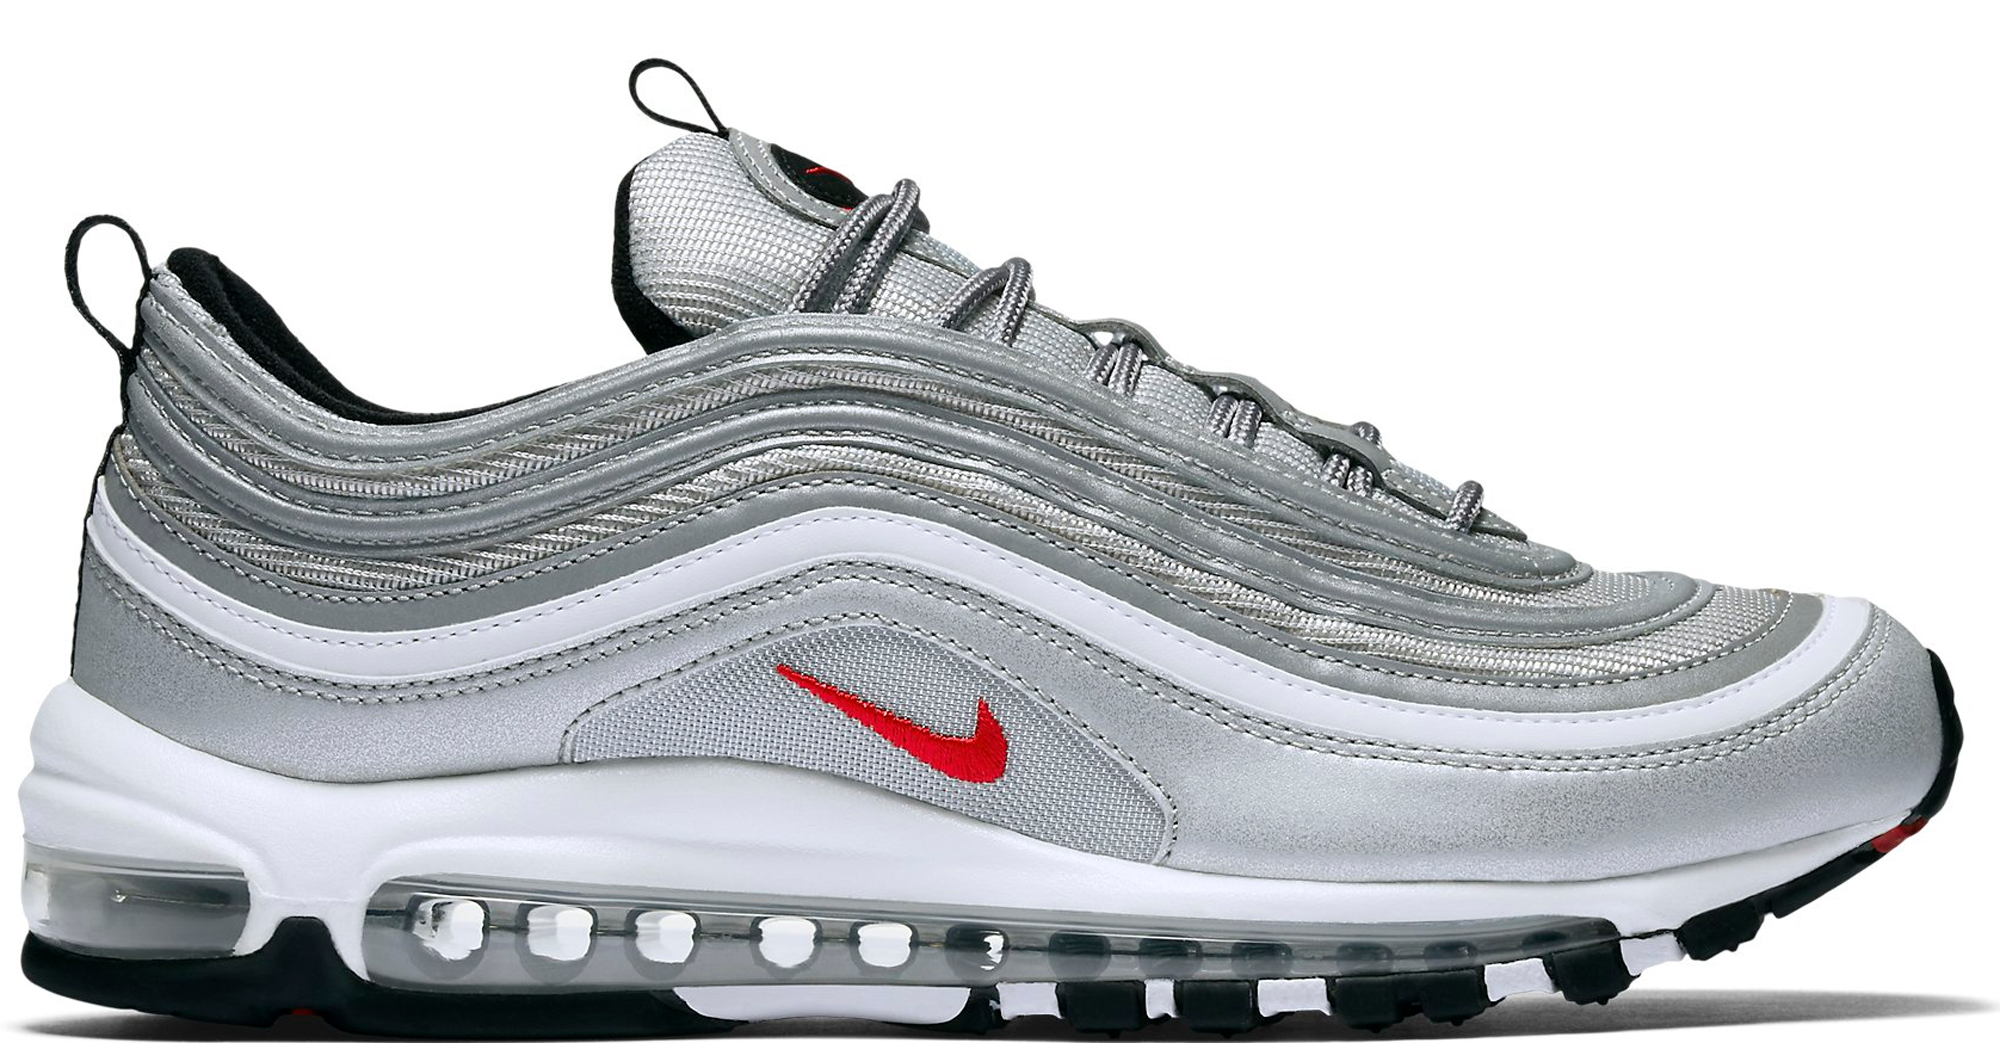 grey yellow mens nike air max 97 shoes. Black Bedroom Furniture Sets. Home Design Ideas